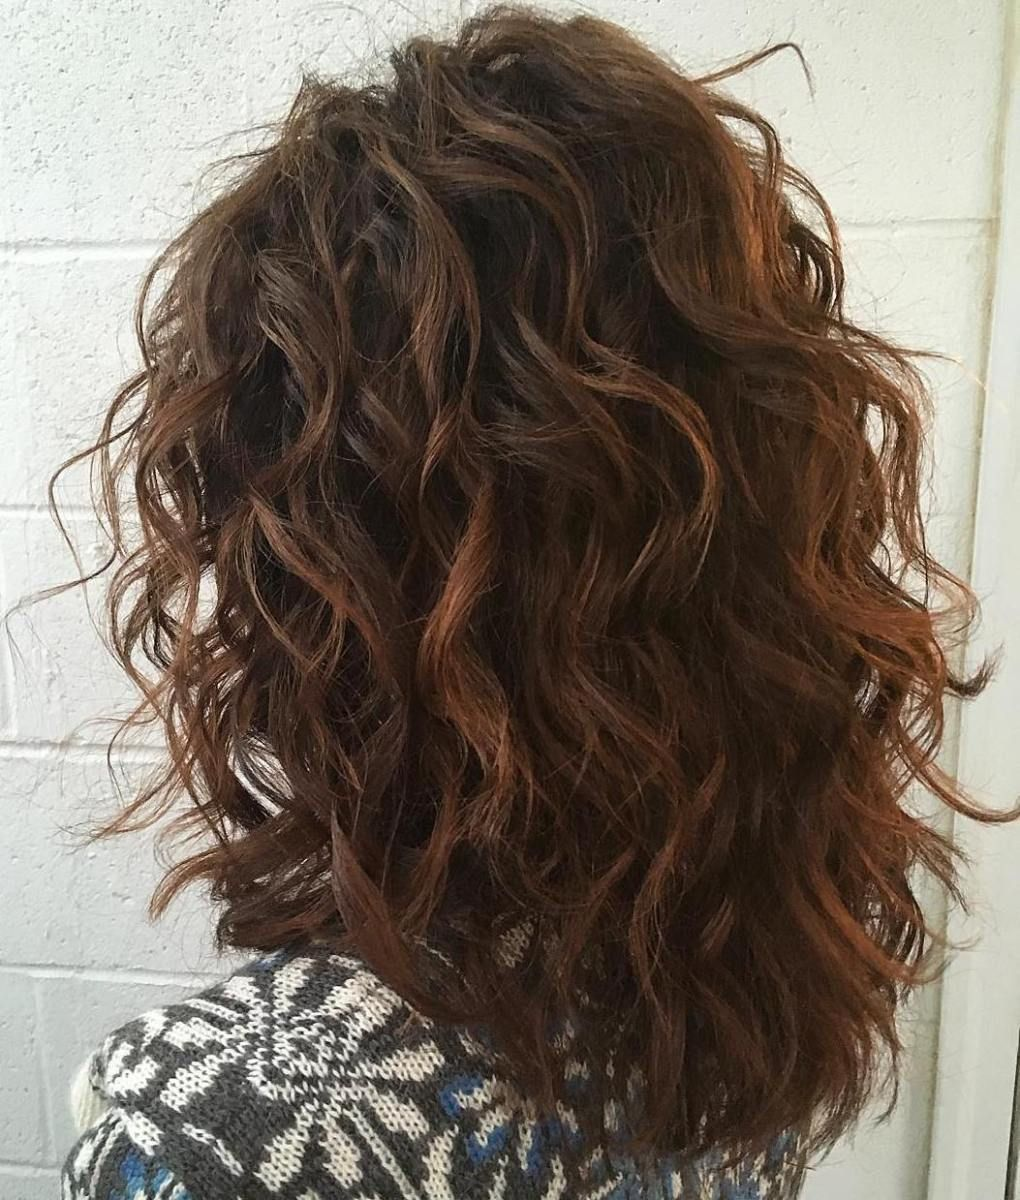 Mid Length Curly Layered Haircut Thick Wavy Hair Natural Wavy Hair Haircut For Thick Hair